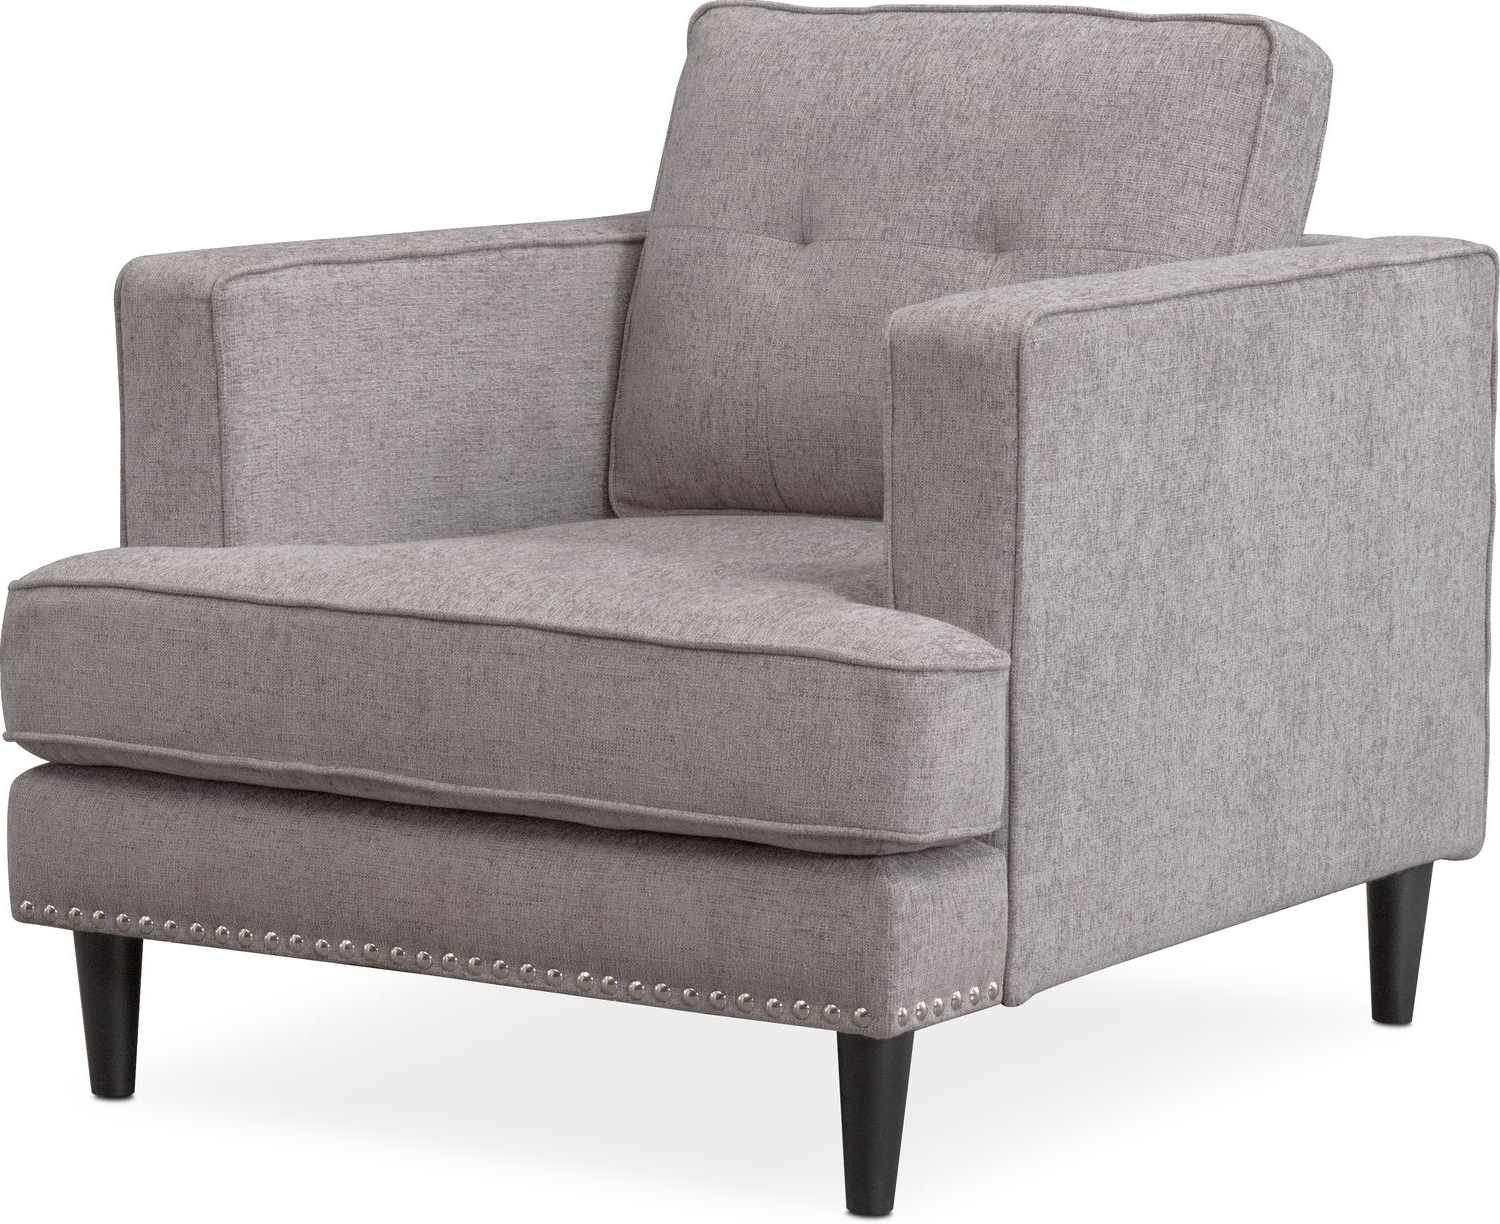 2018 Parker Sofa, Chair And Ottoman Set (View 11 of 20)